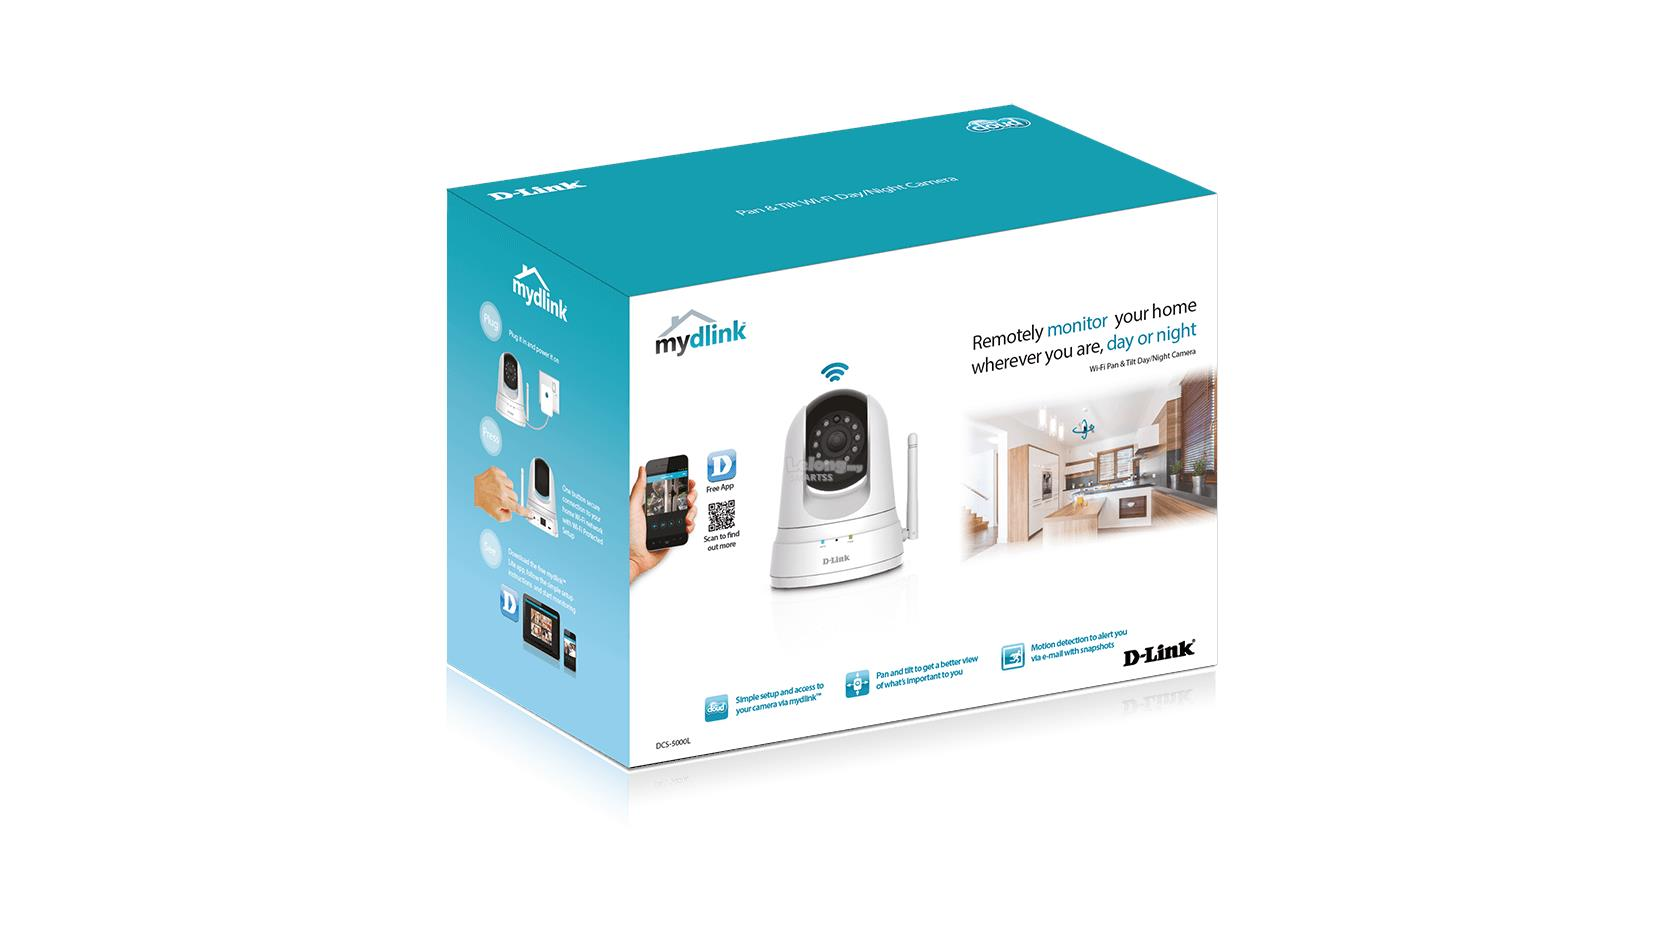 NW. D-LINK IP CAMERA WIRELESS N PAN / TILT BASIC W/ IR DCS-5000L